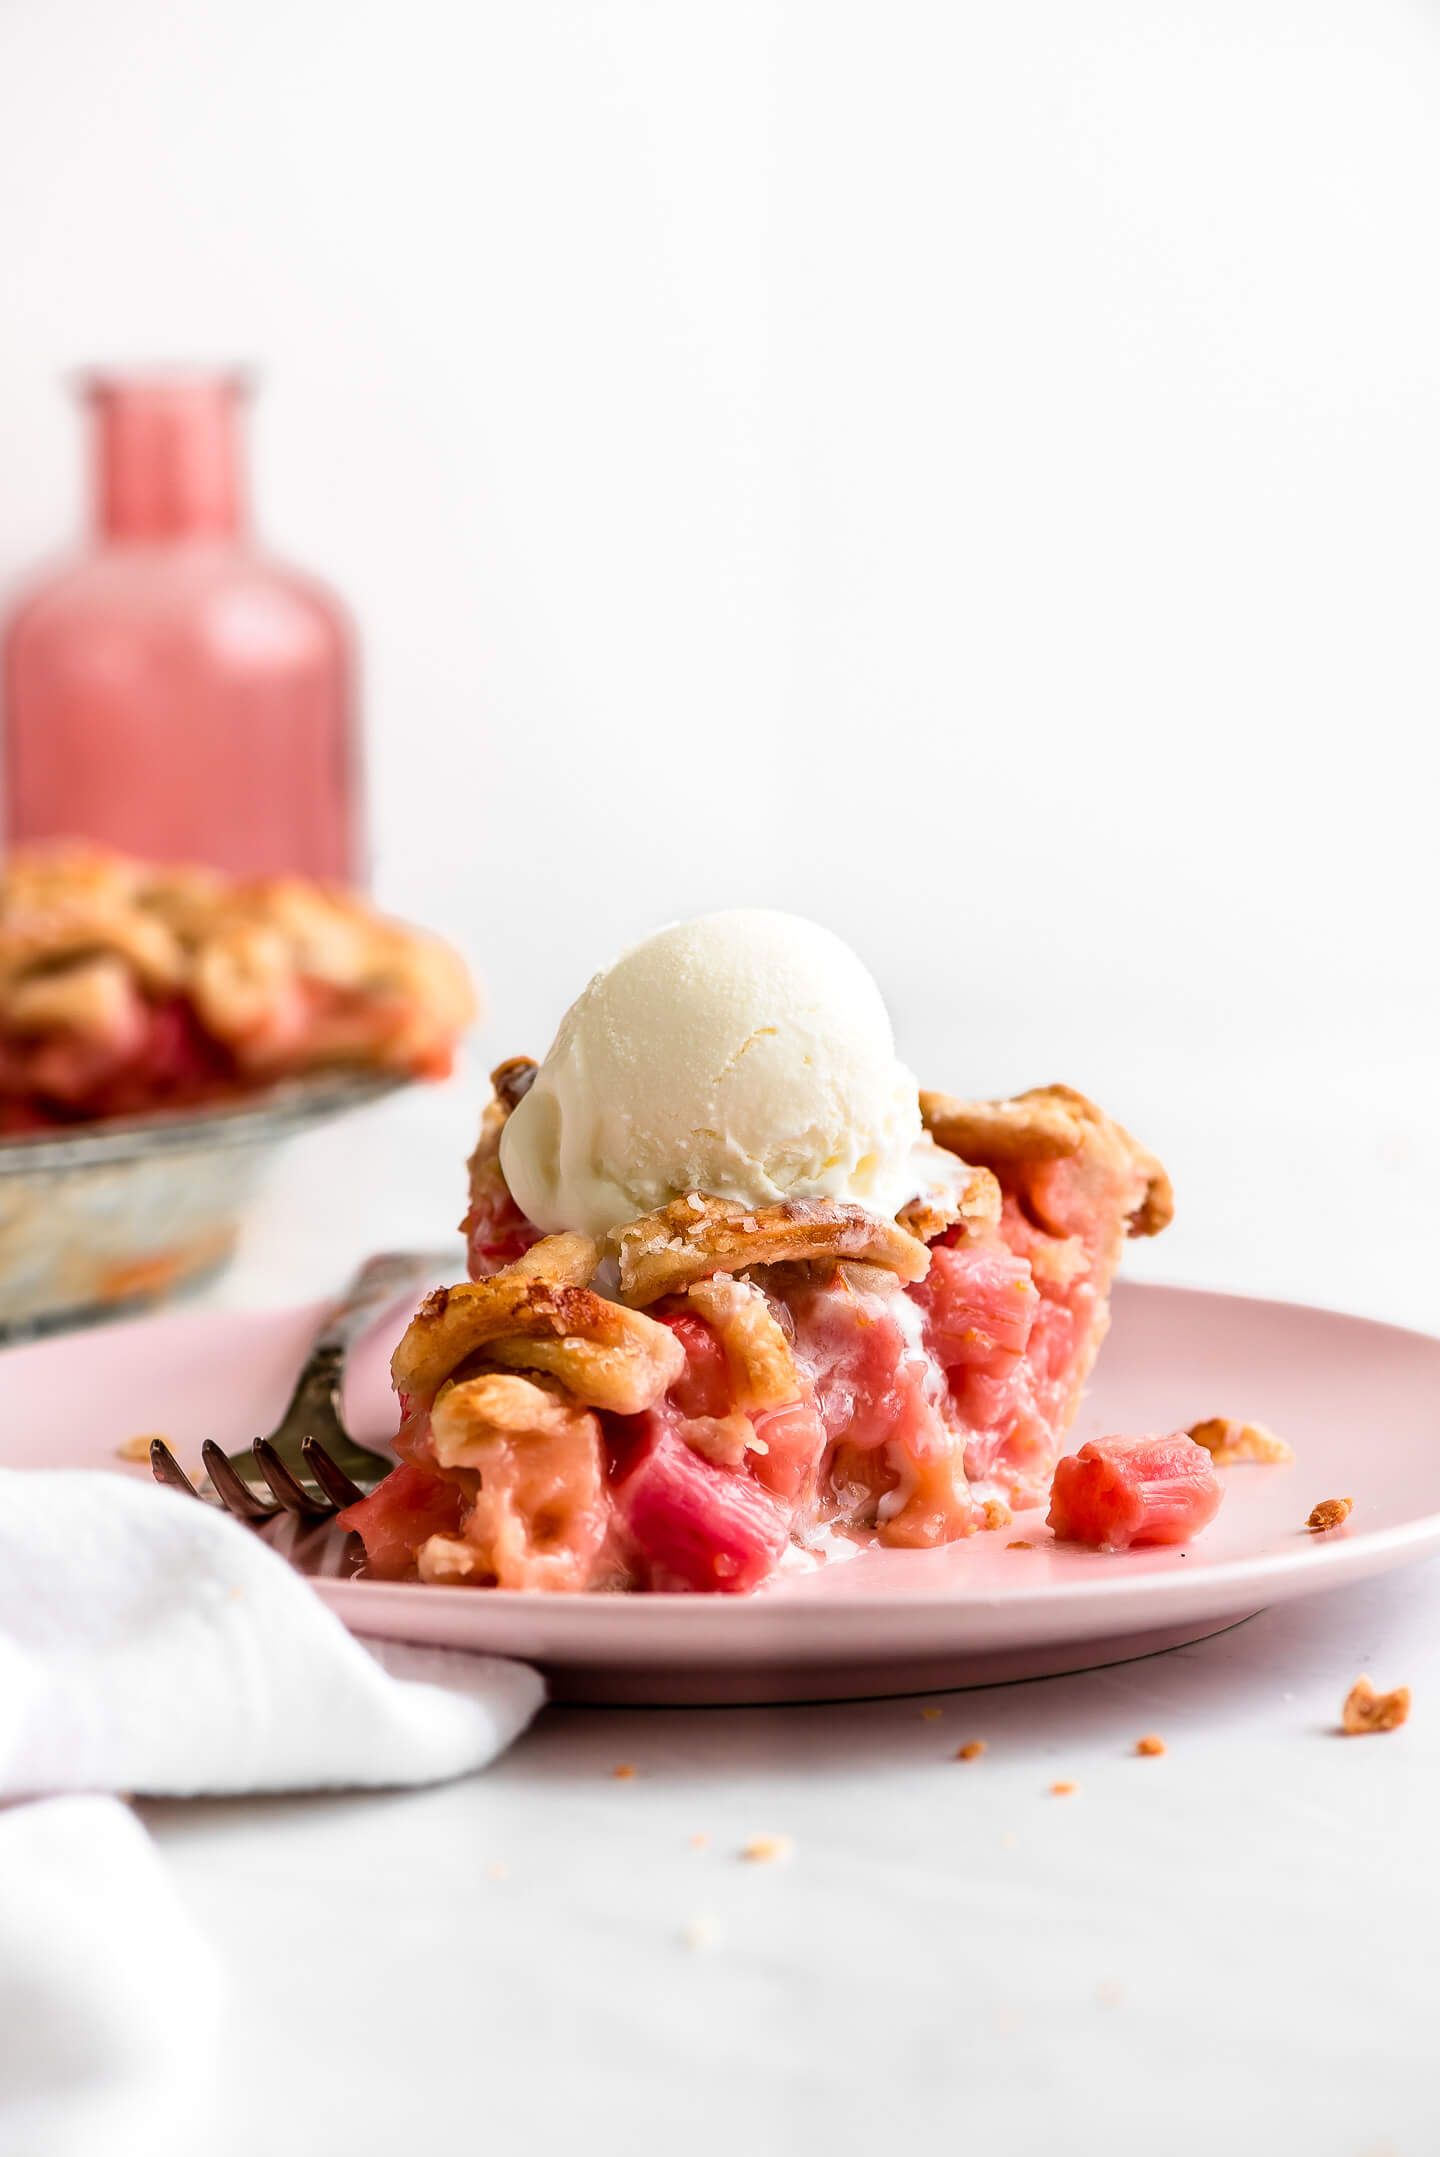 A pink plate with a slice of Rhubarb Pie topped with a scoop of vanilla ice cream.